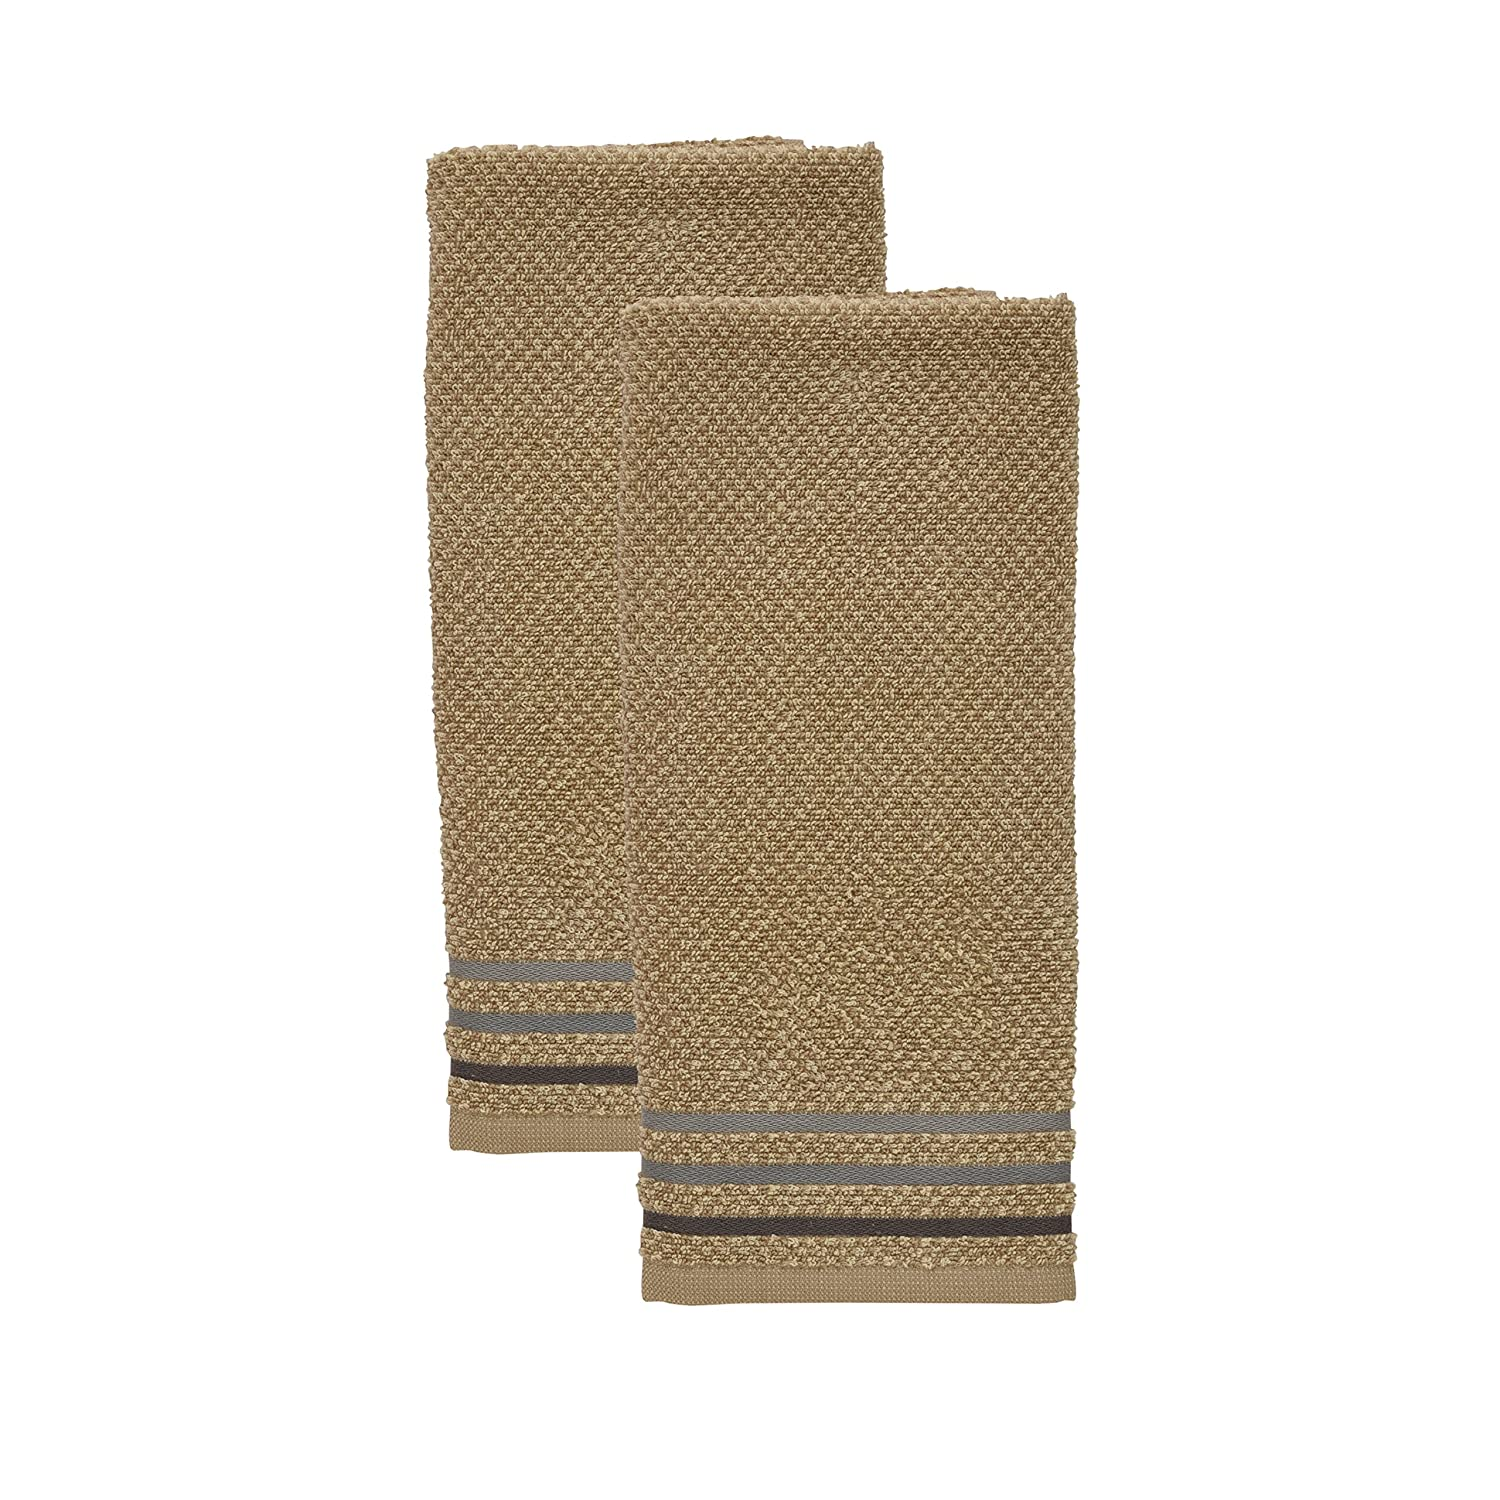 Kitchenaid Checkerboard Kitchen Towel, ONE Size, Sand TOWN & COUNTRY LIVING 150077KT2 195